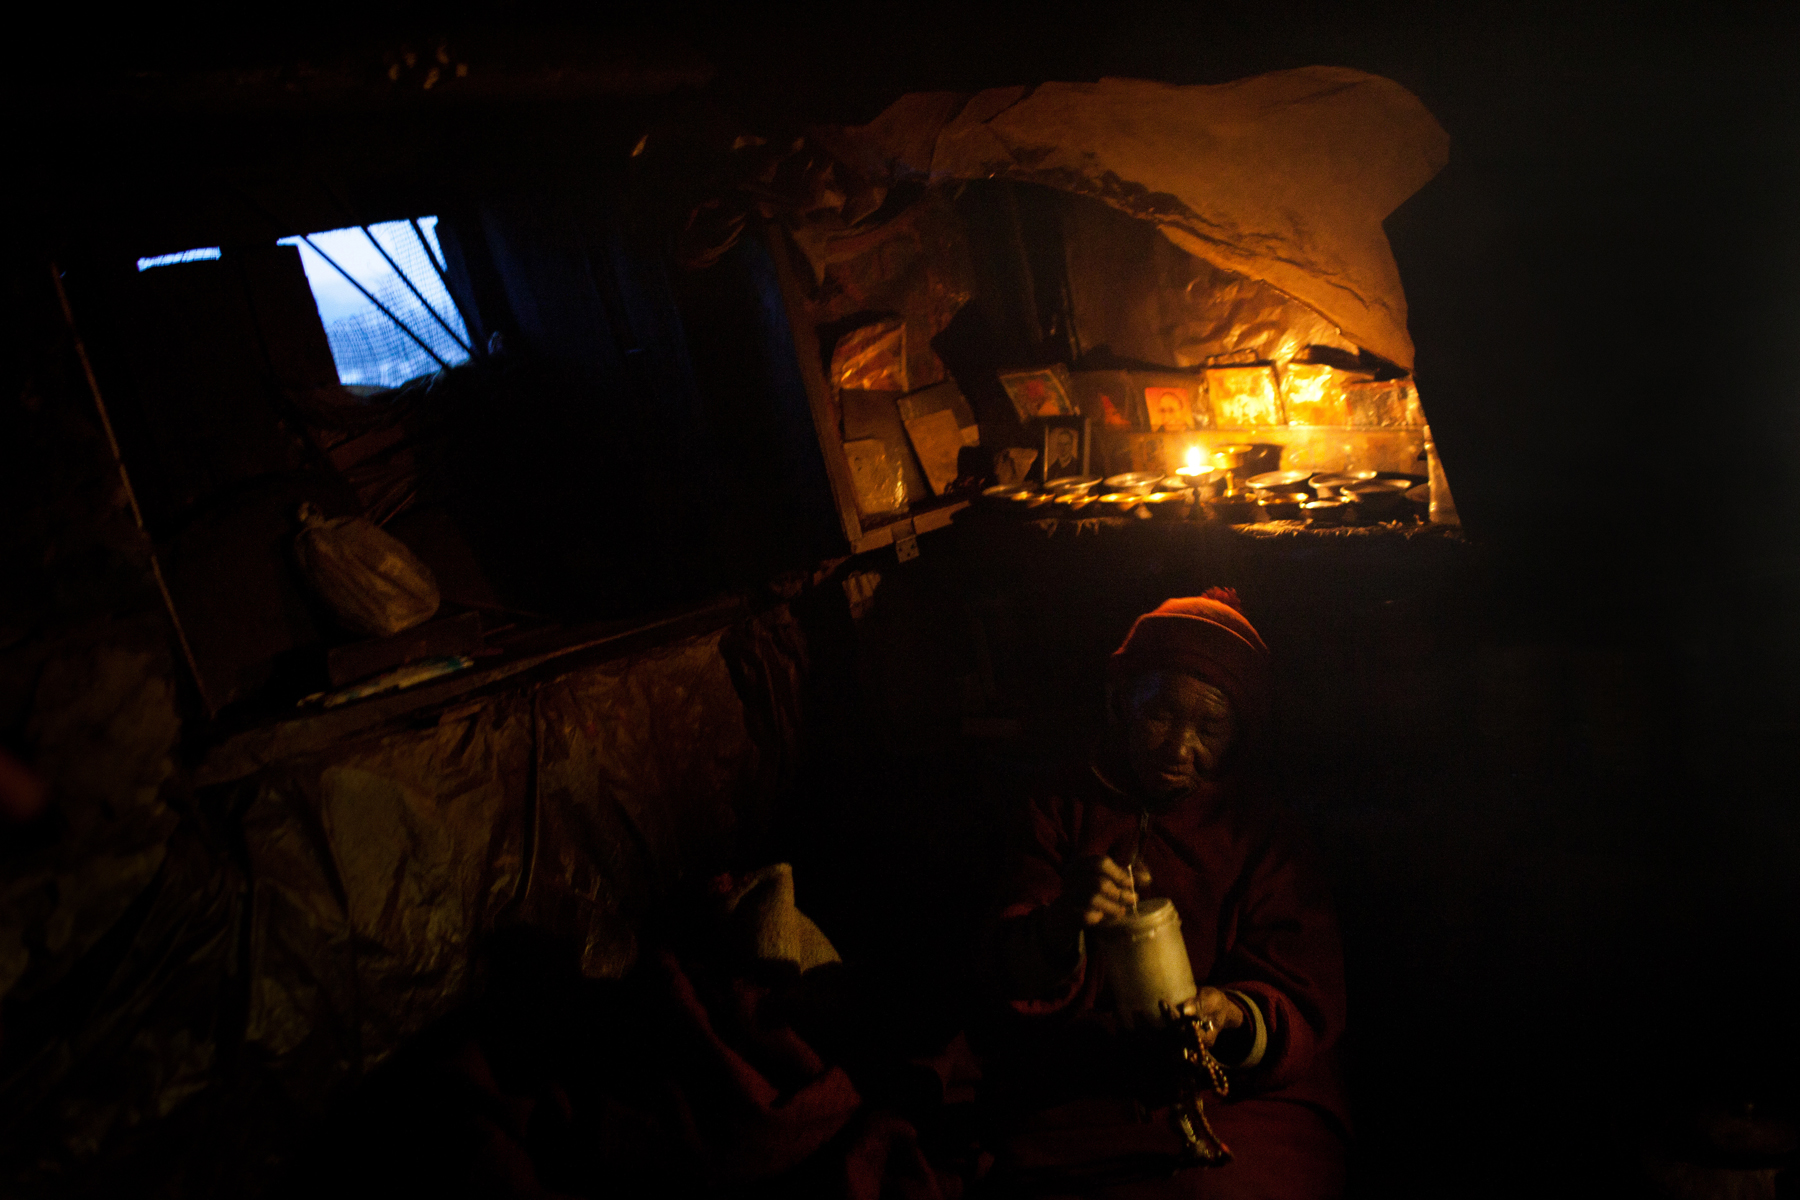 An elderly nun living in Thame prays by the candlelight cast by the small shrine above her bed.